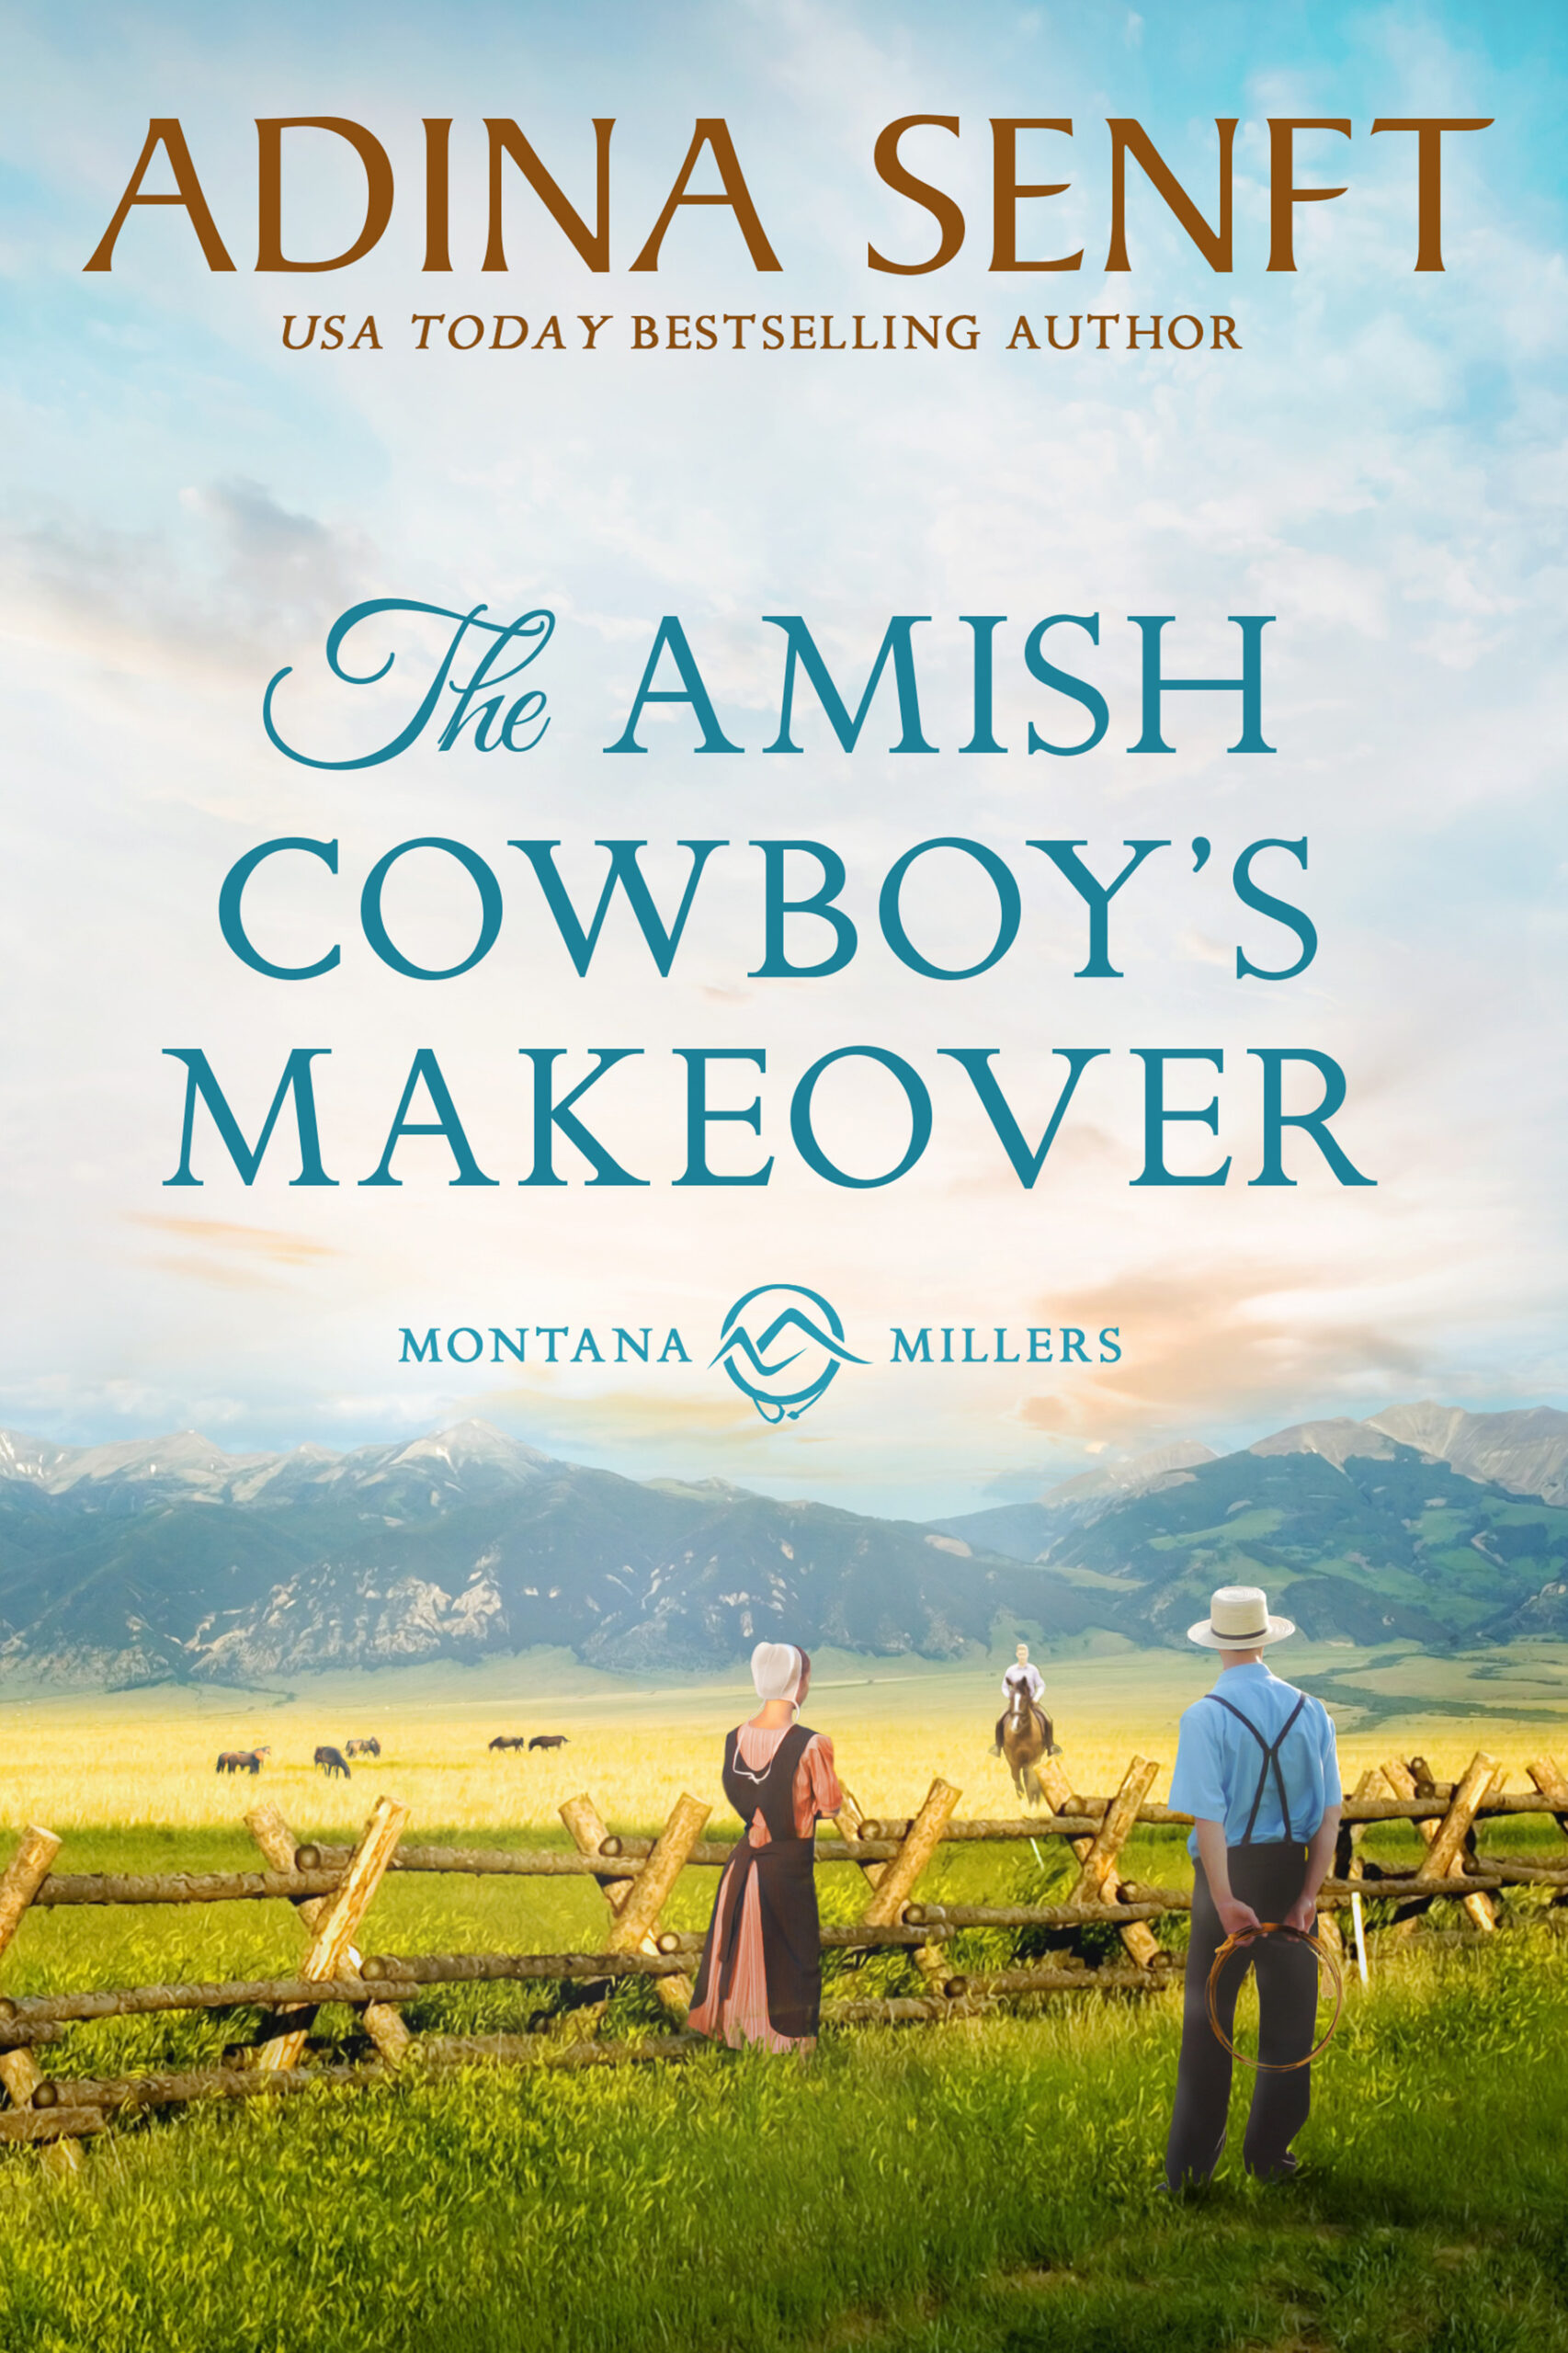 The Amish Cowboy's Makeover by Adina Senft